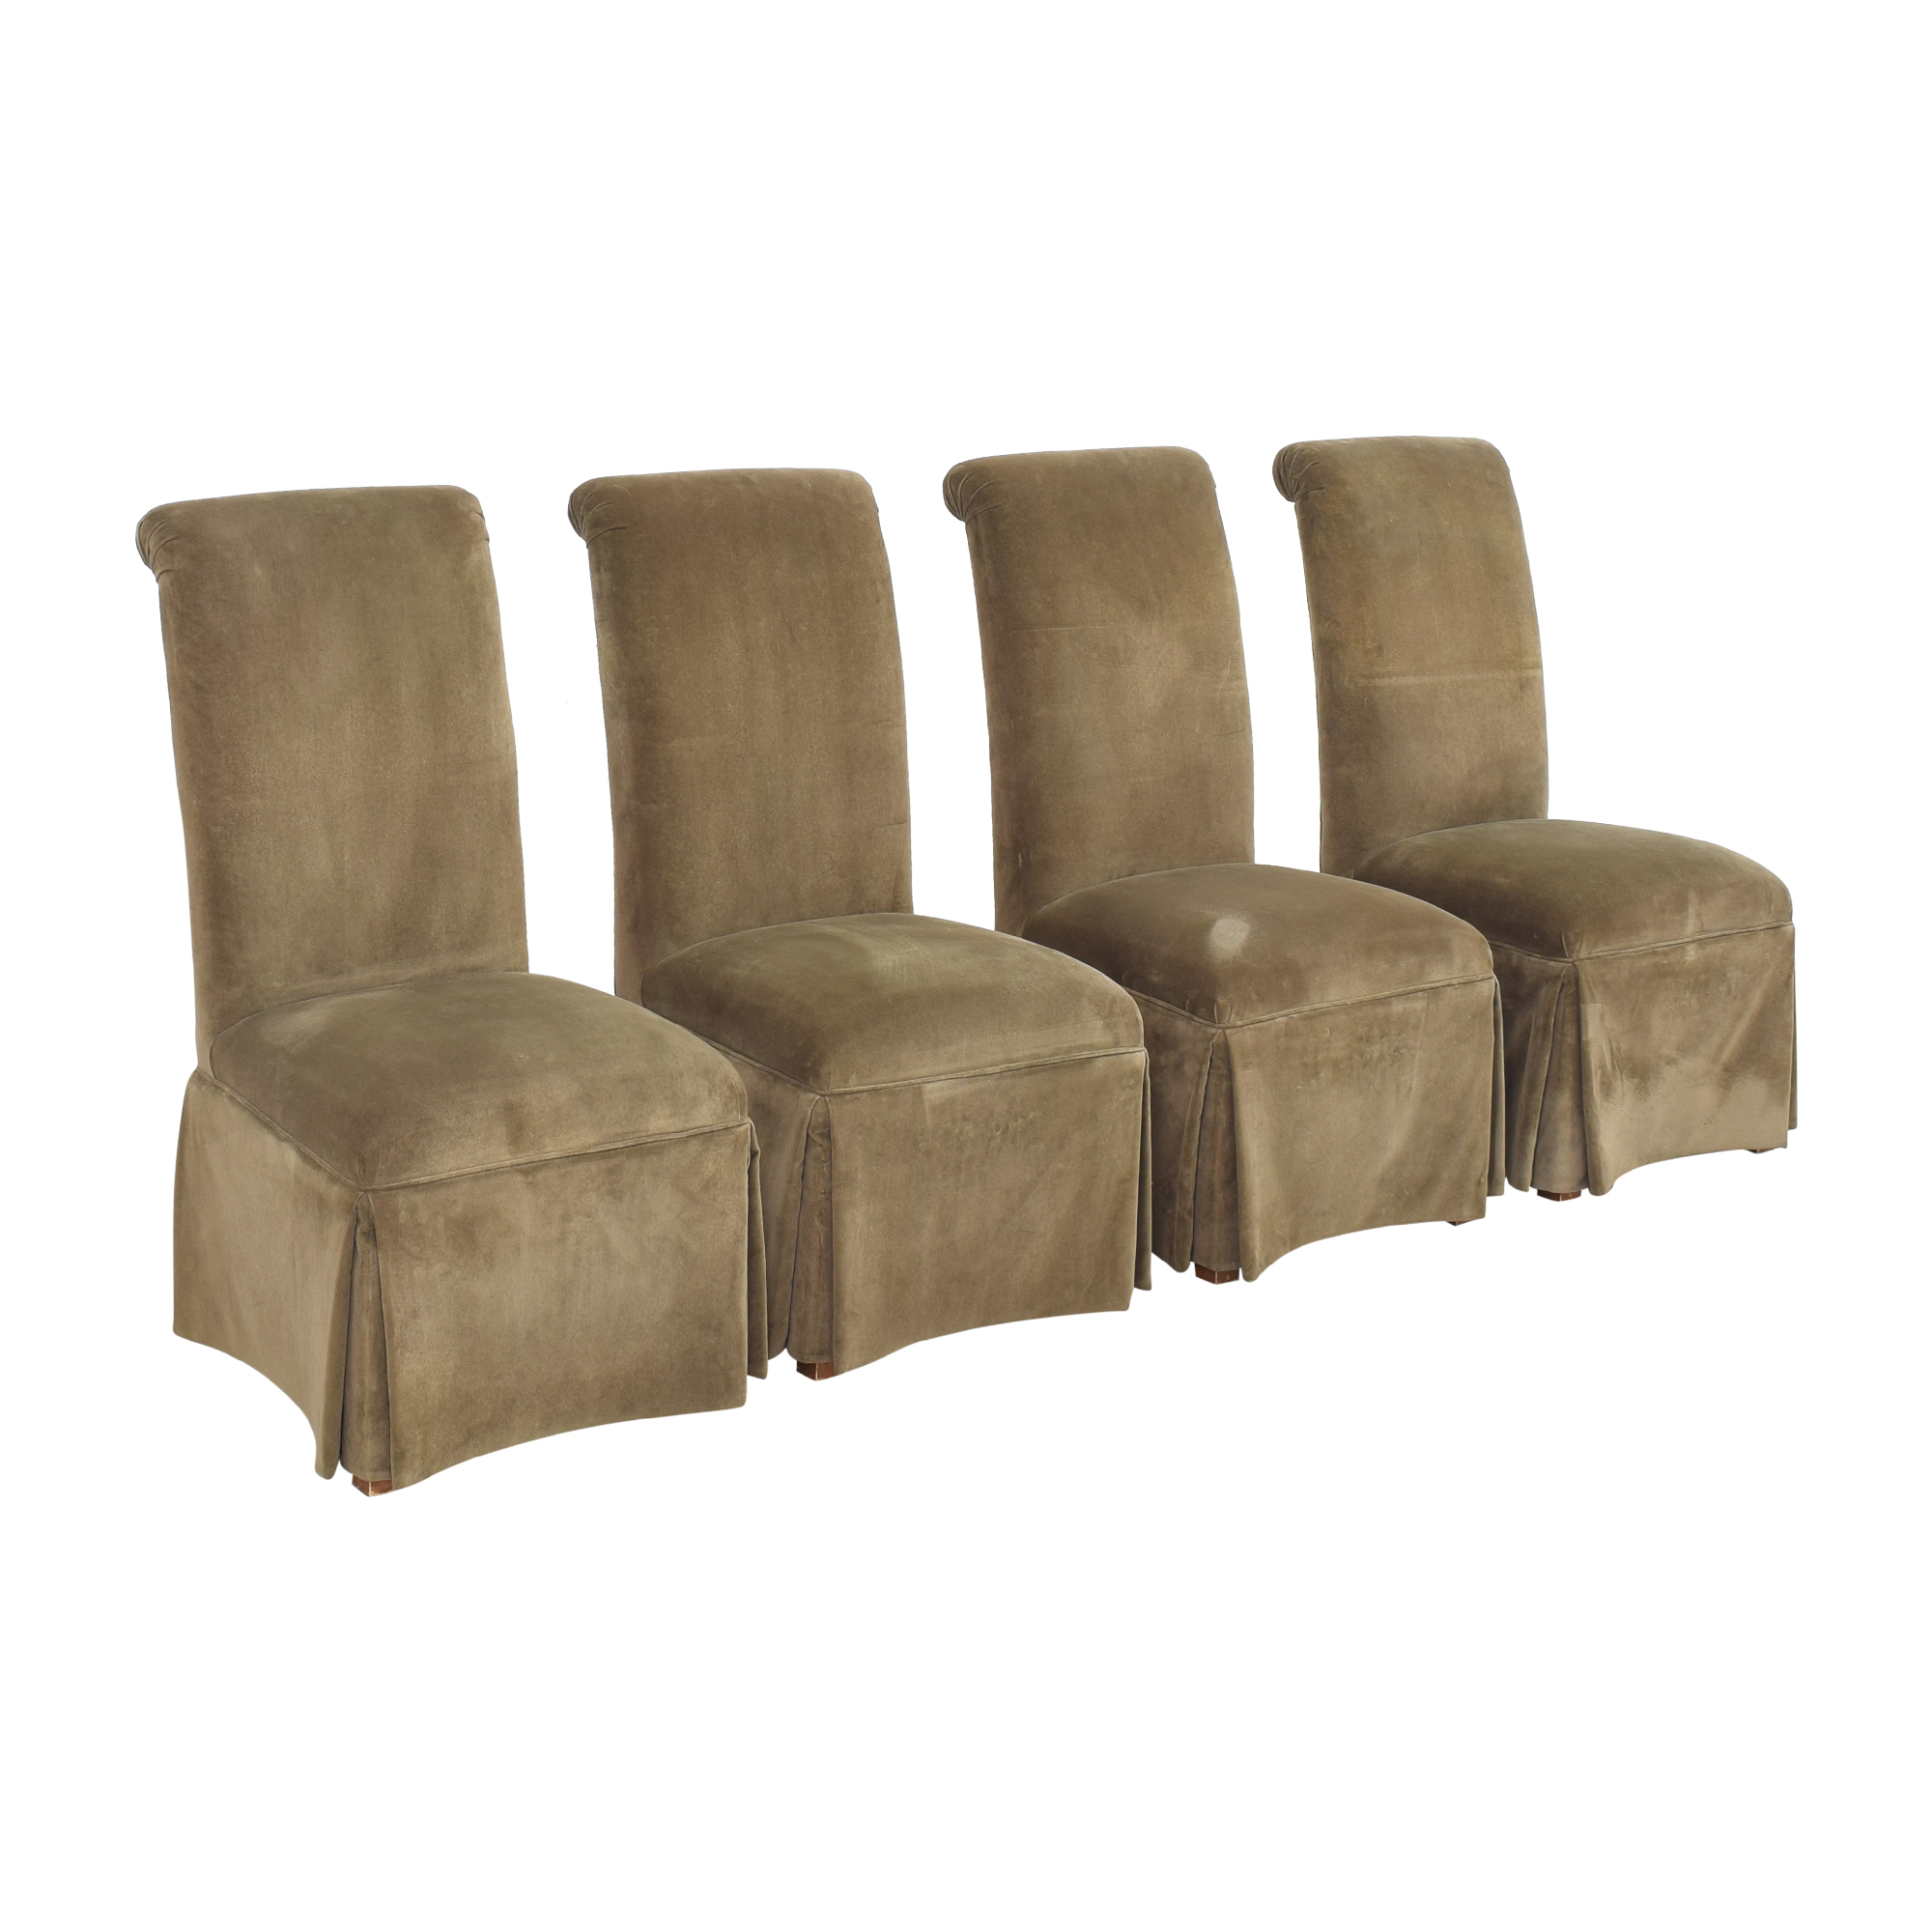 buy Domain Domain Skirted Dining Chairs online